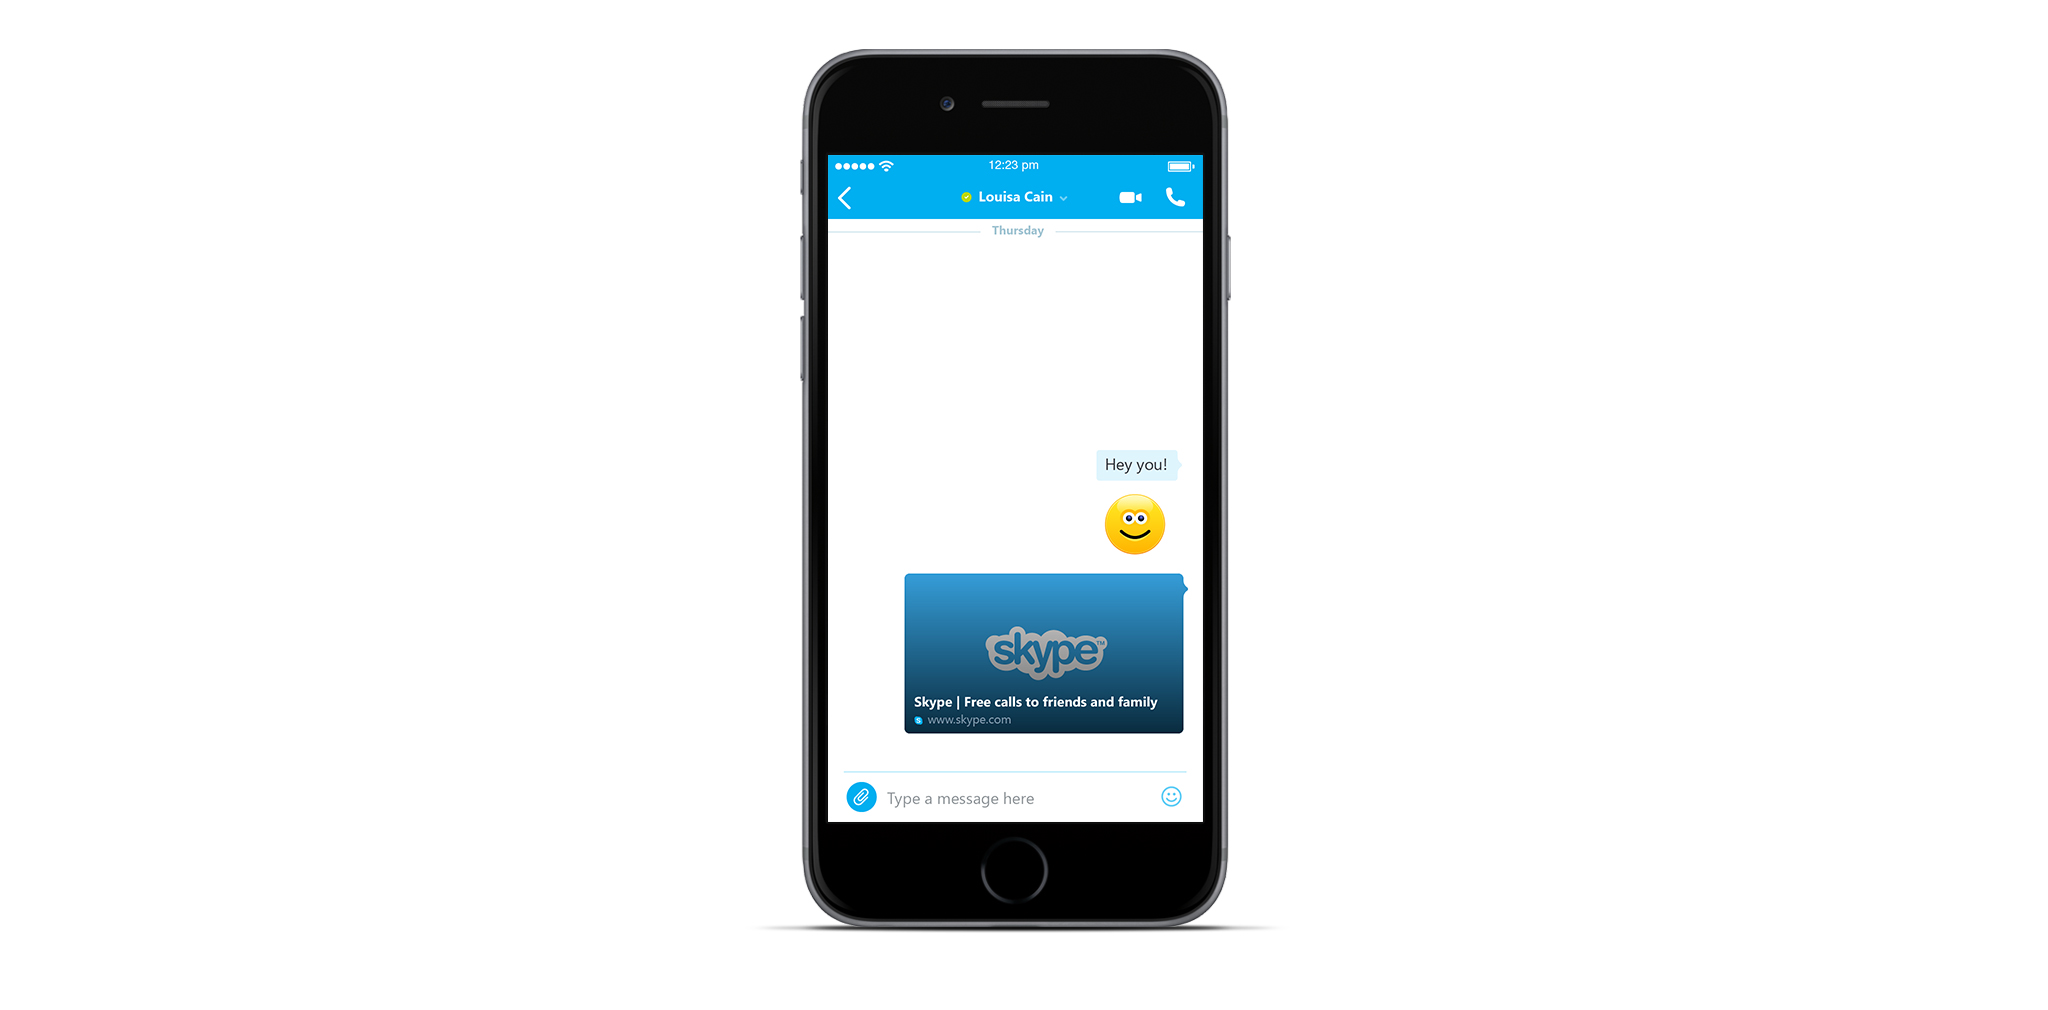 Skype for iPhone update allows users to preview Web links while chatting